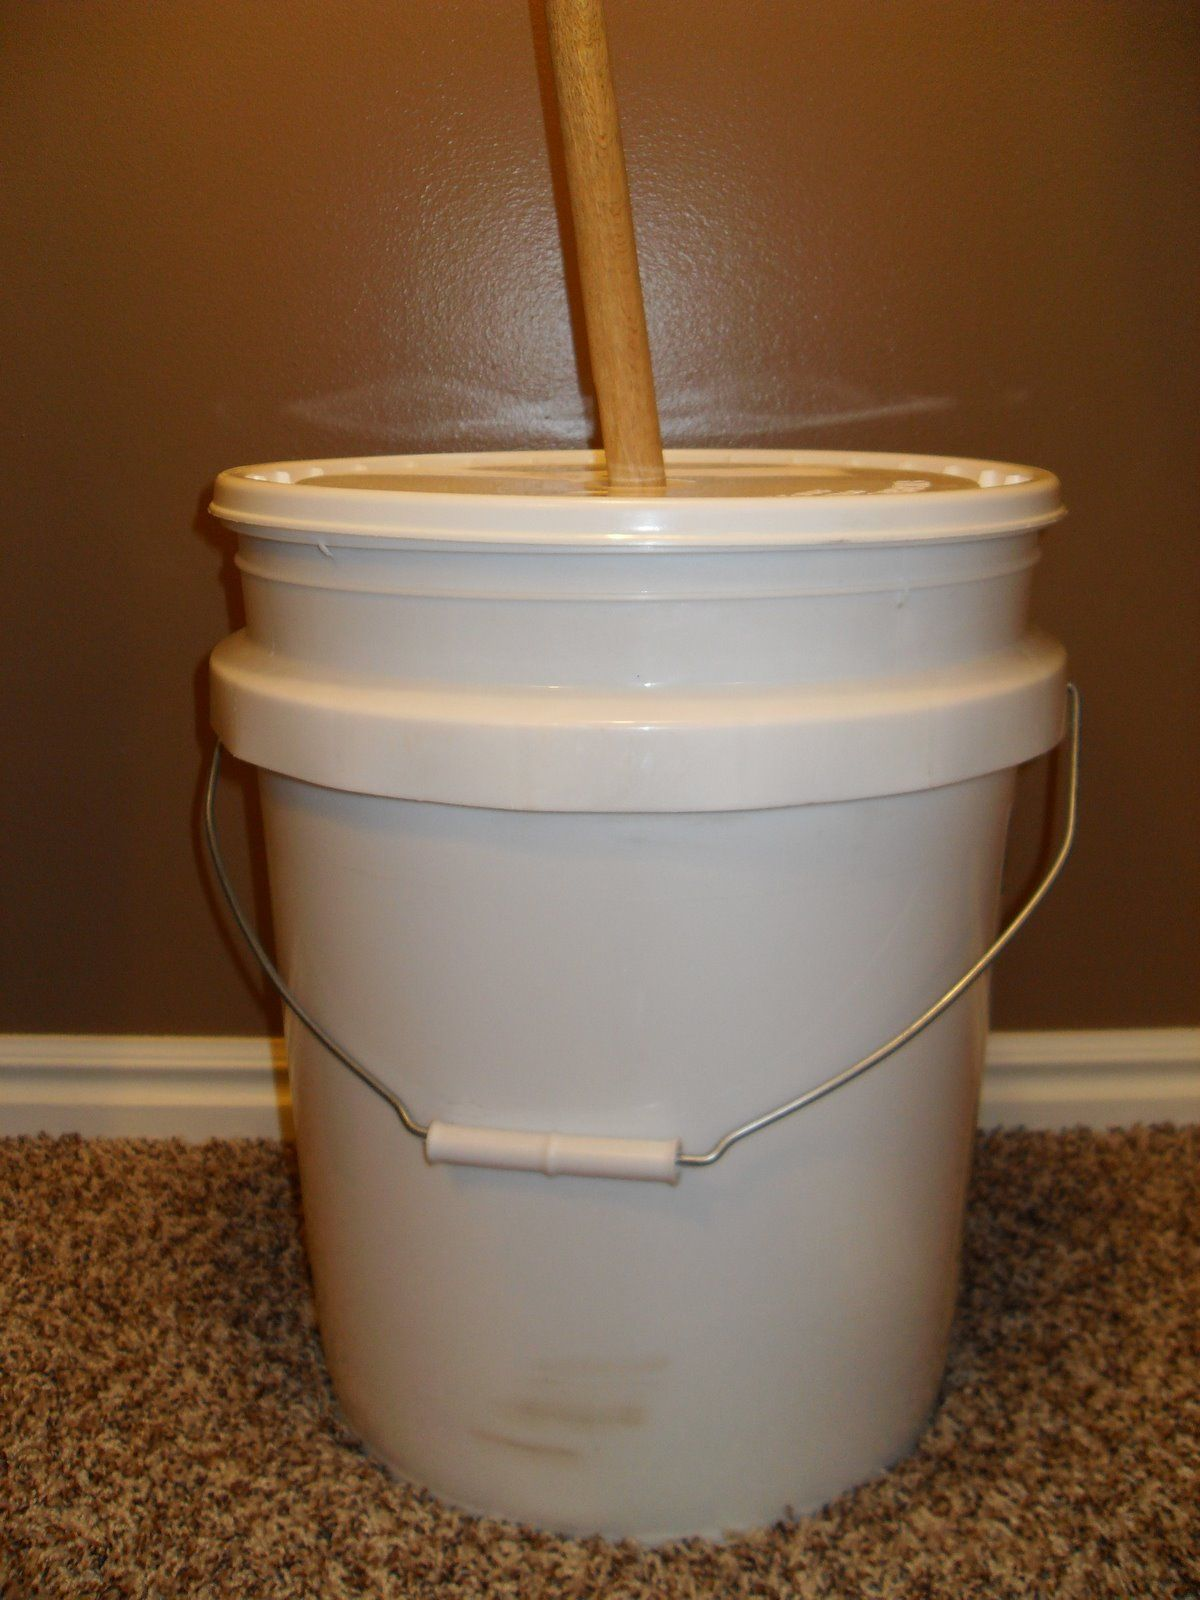 Nice clothes washing kit that would be a nice, no-power addition to a long-term emergency or preparedness set up.  Can also see it being a great addition to a base-camp for hikers, cabins or hunters.  NOTE: You could store two 5-gallon buckets, stack one inside of the other. Use one bucket for the soapy water and the other for the rinse water. You may be able to wash and rinse a couple of batches of clothes without changing the soapy water depending on how dirty the clothes are.